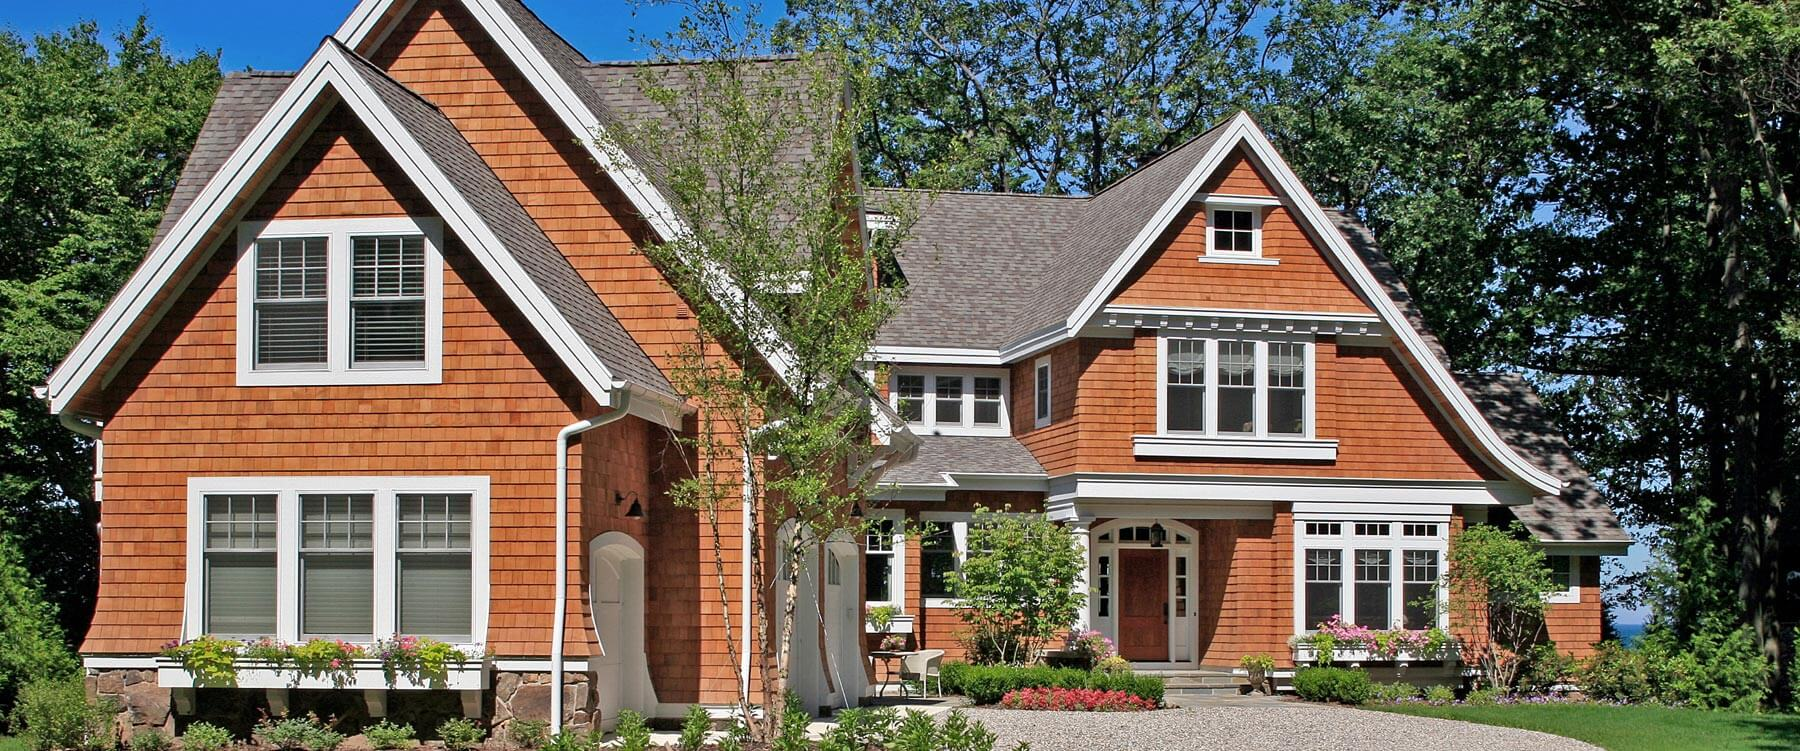 Exterior - Shingle Style Cottage